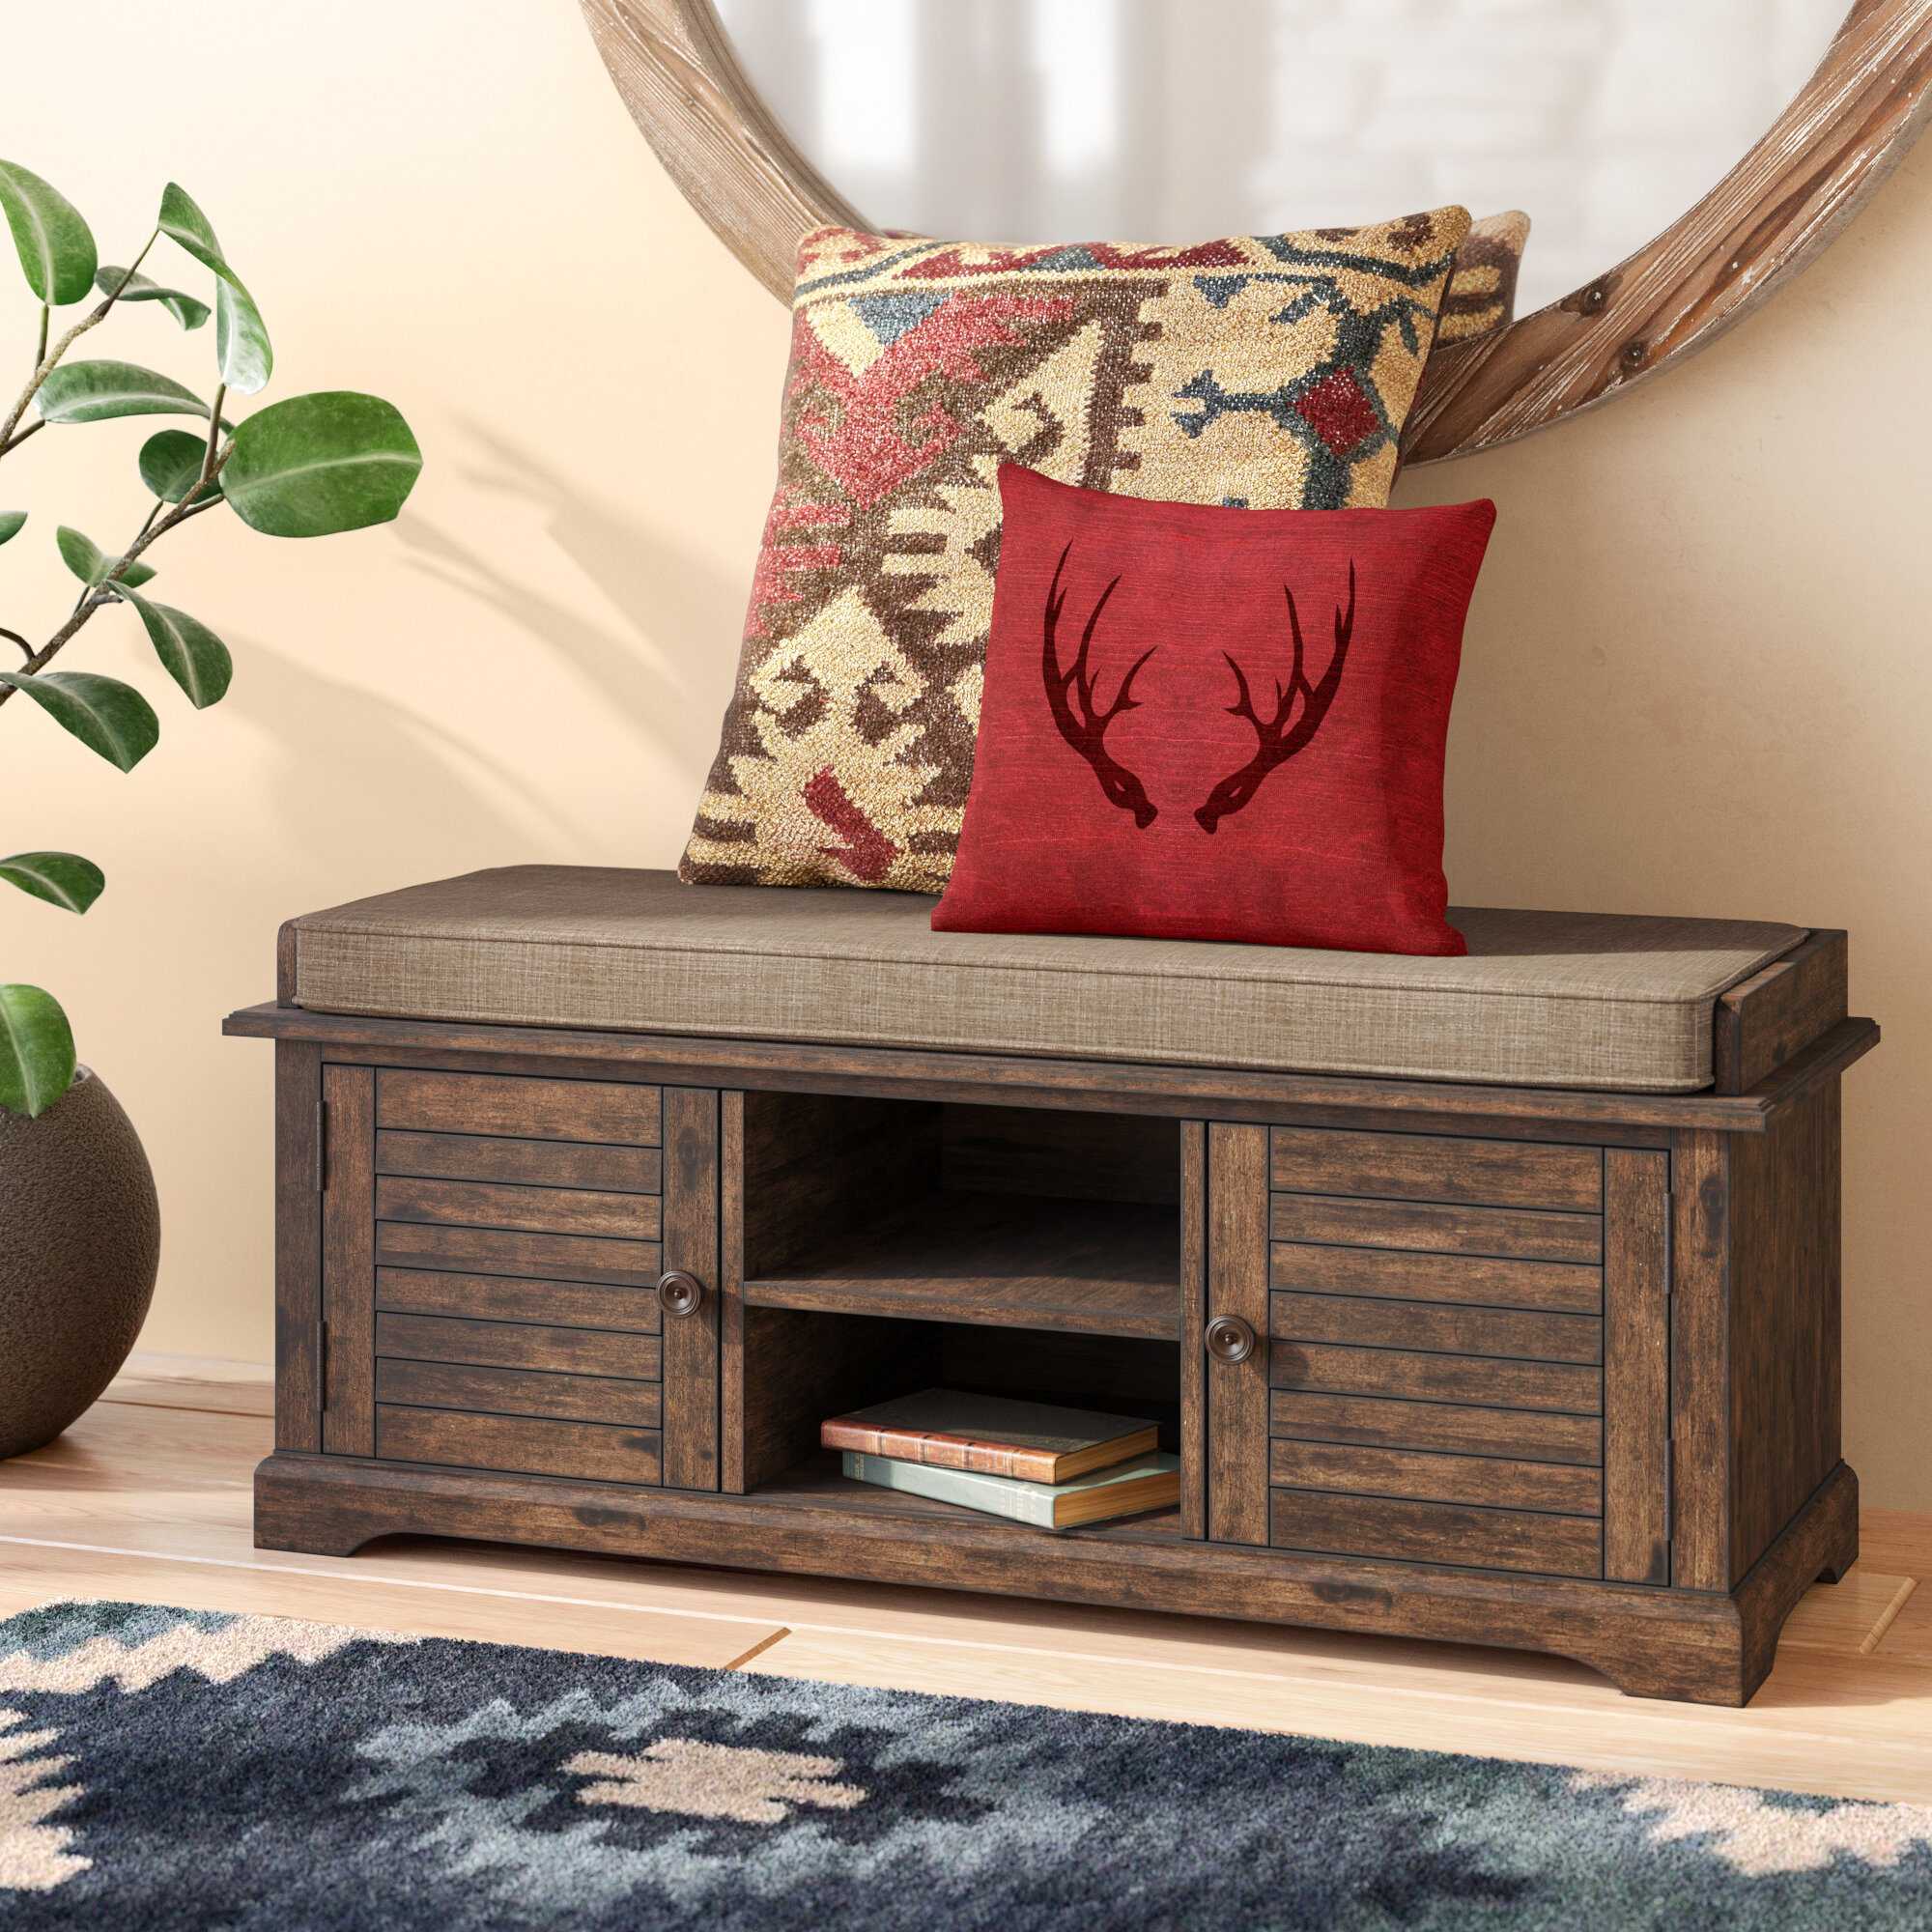 Admirable Camille Canton Wood Entryway Storage Bench Beatyapartments Chair Design Images Beatyapartmentscom